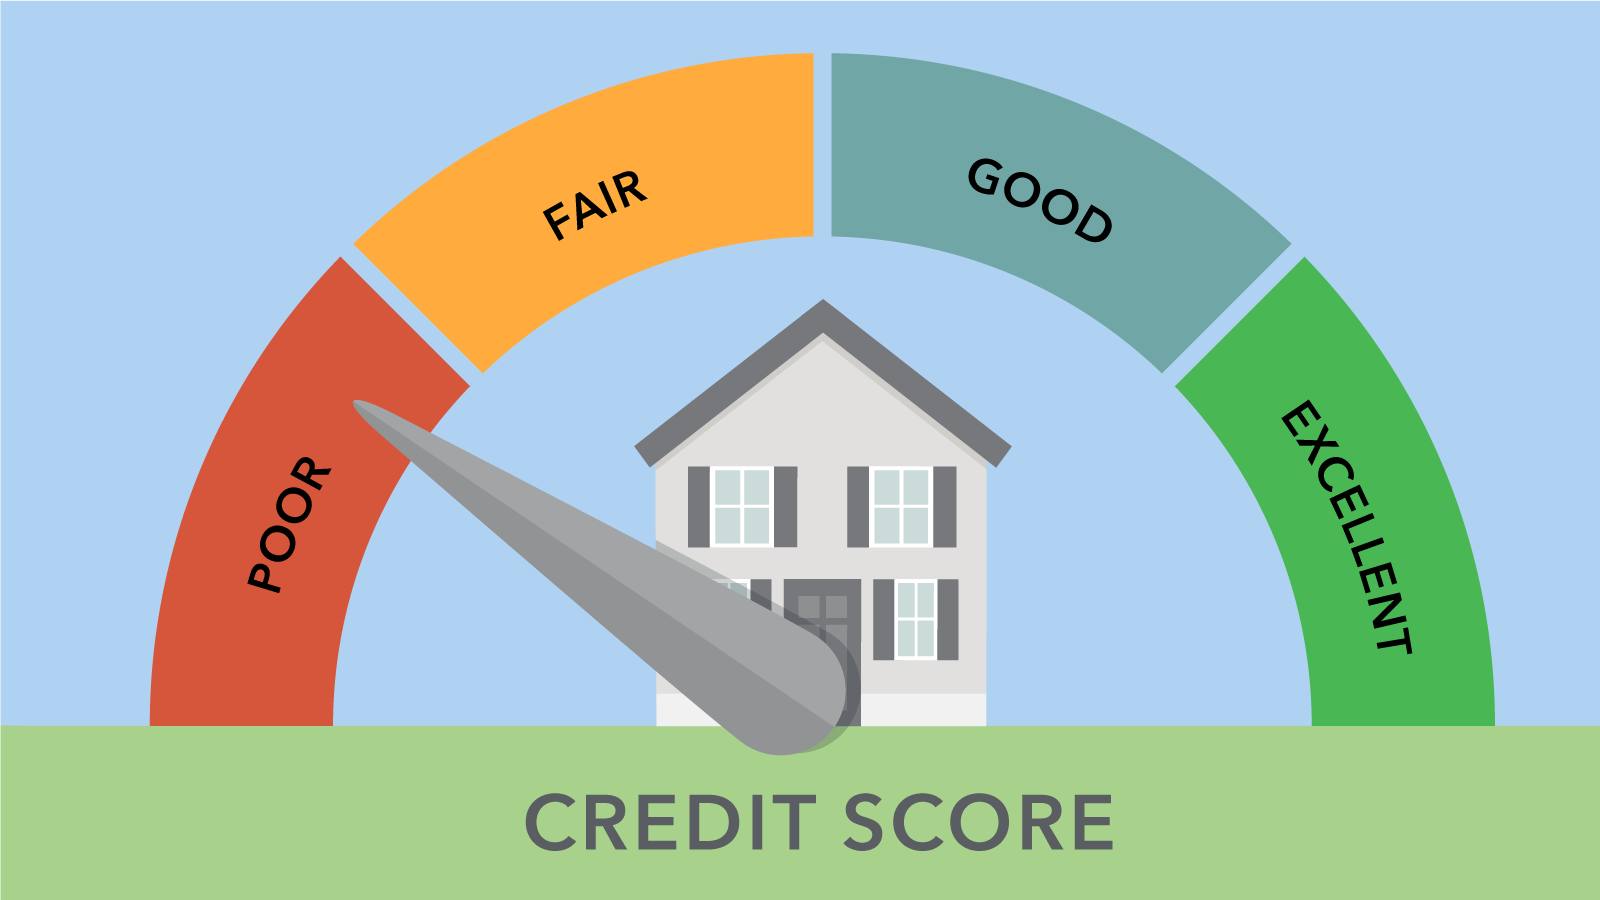 It's Your Credit Score, So Why Not Show It Some Love?